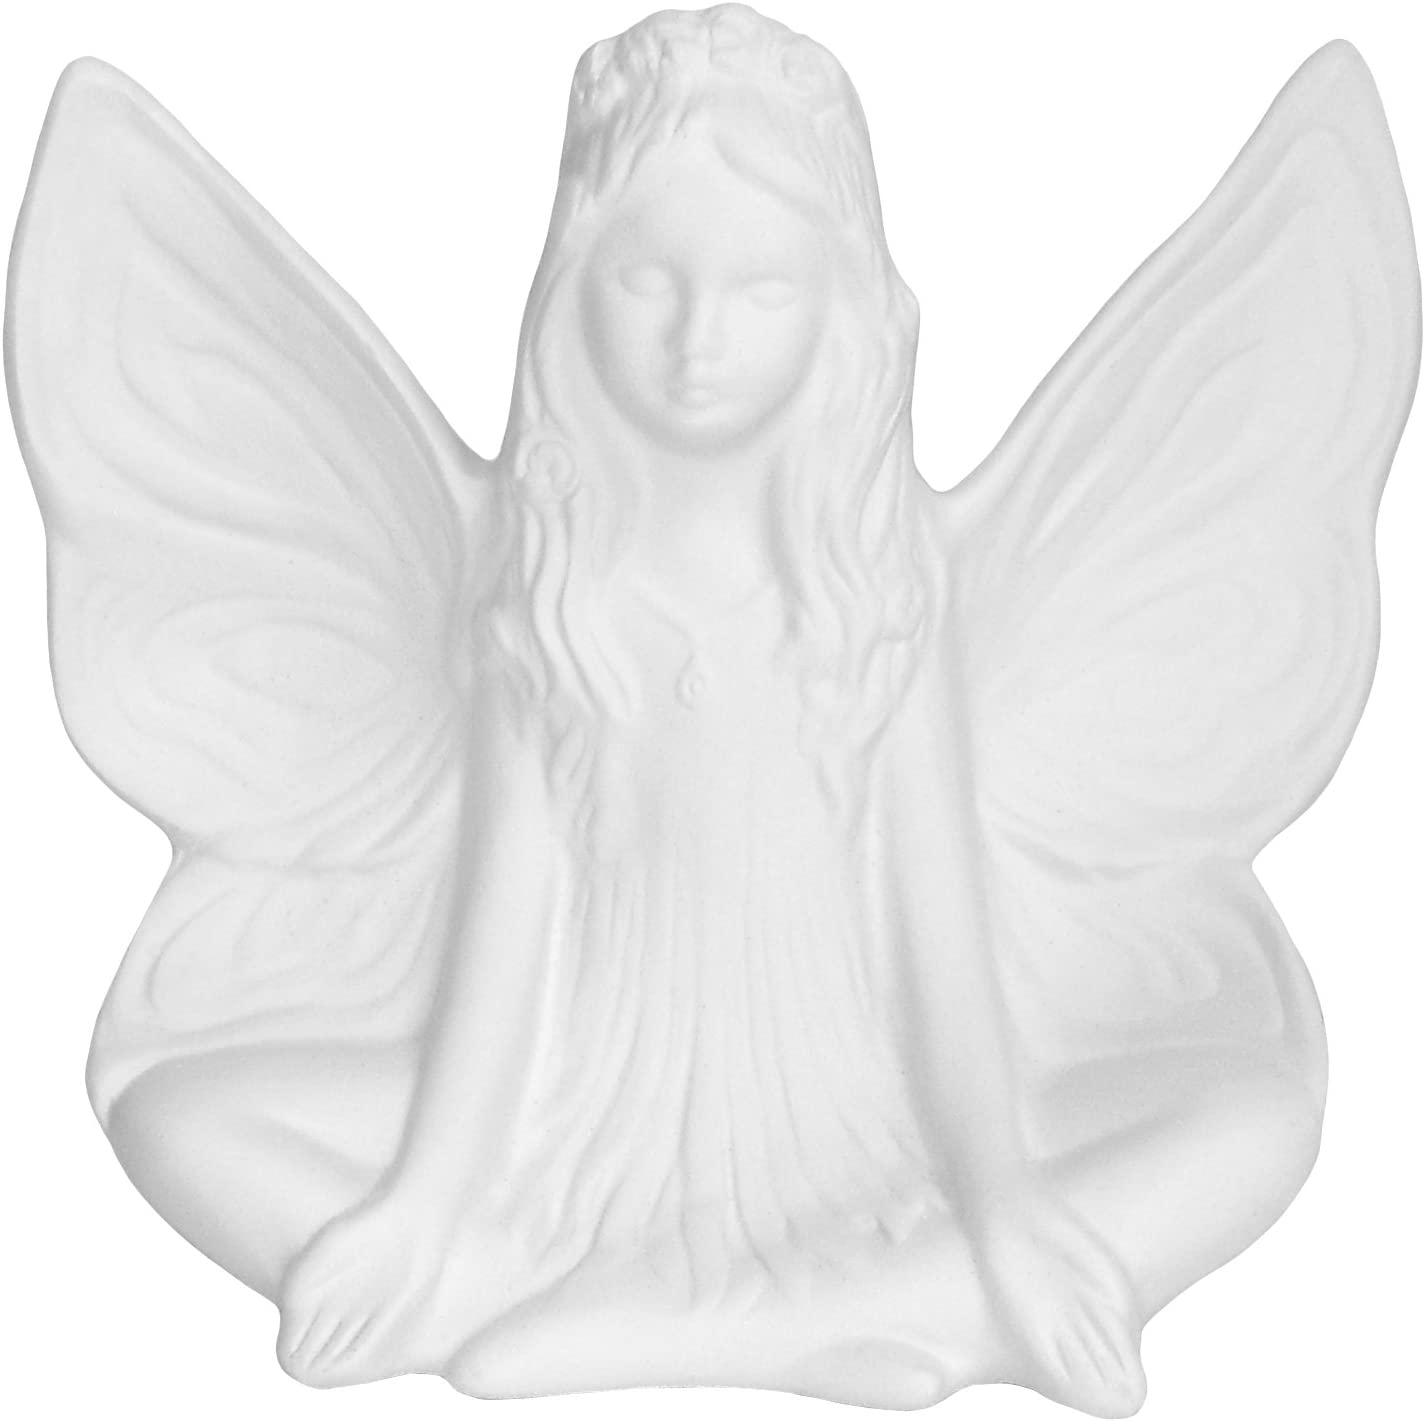 Stunning Detail Paint Your Own Mystical Ceramic Keepsake Mari The Magnificent Fairy